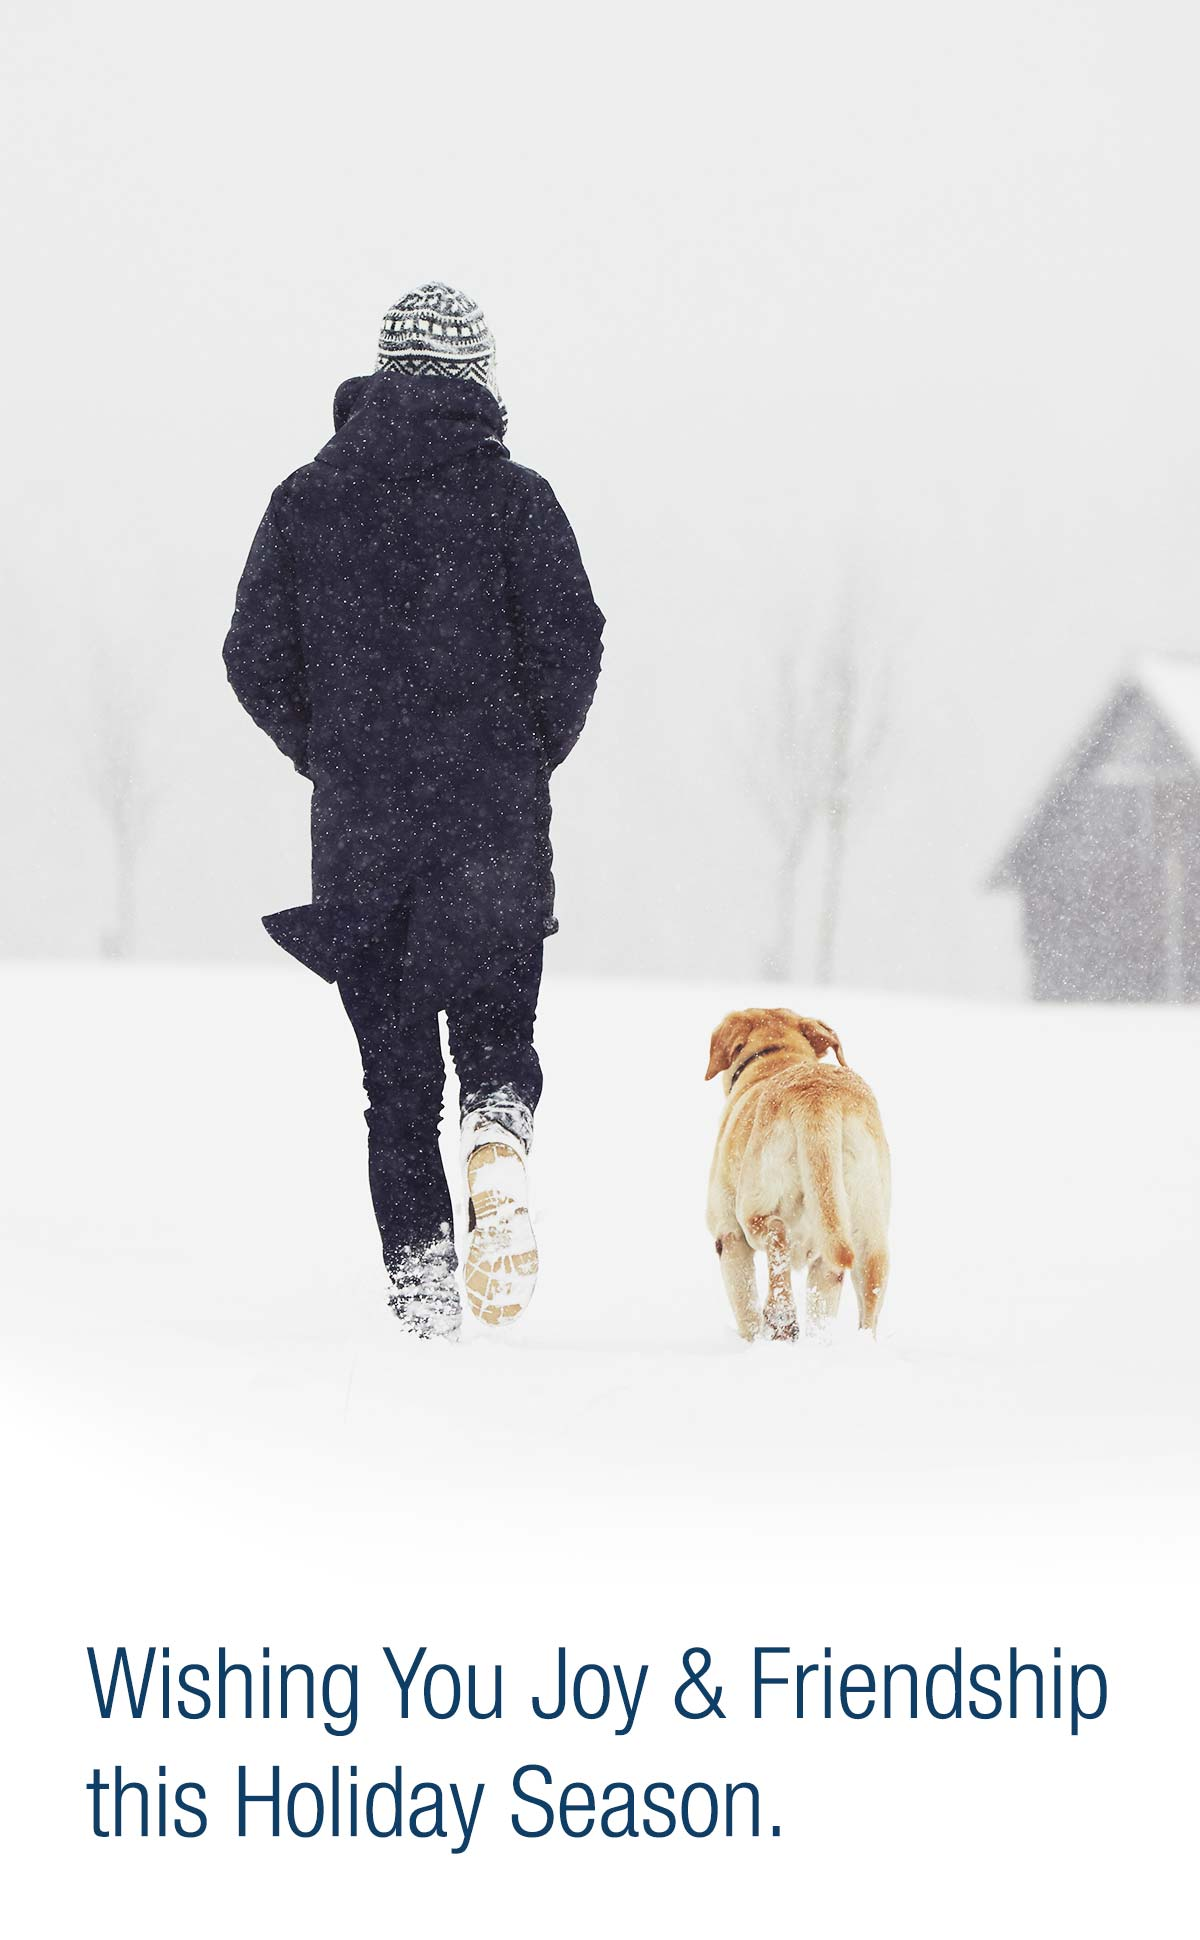 A man and his dog walking in snow.